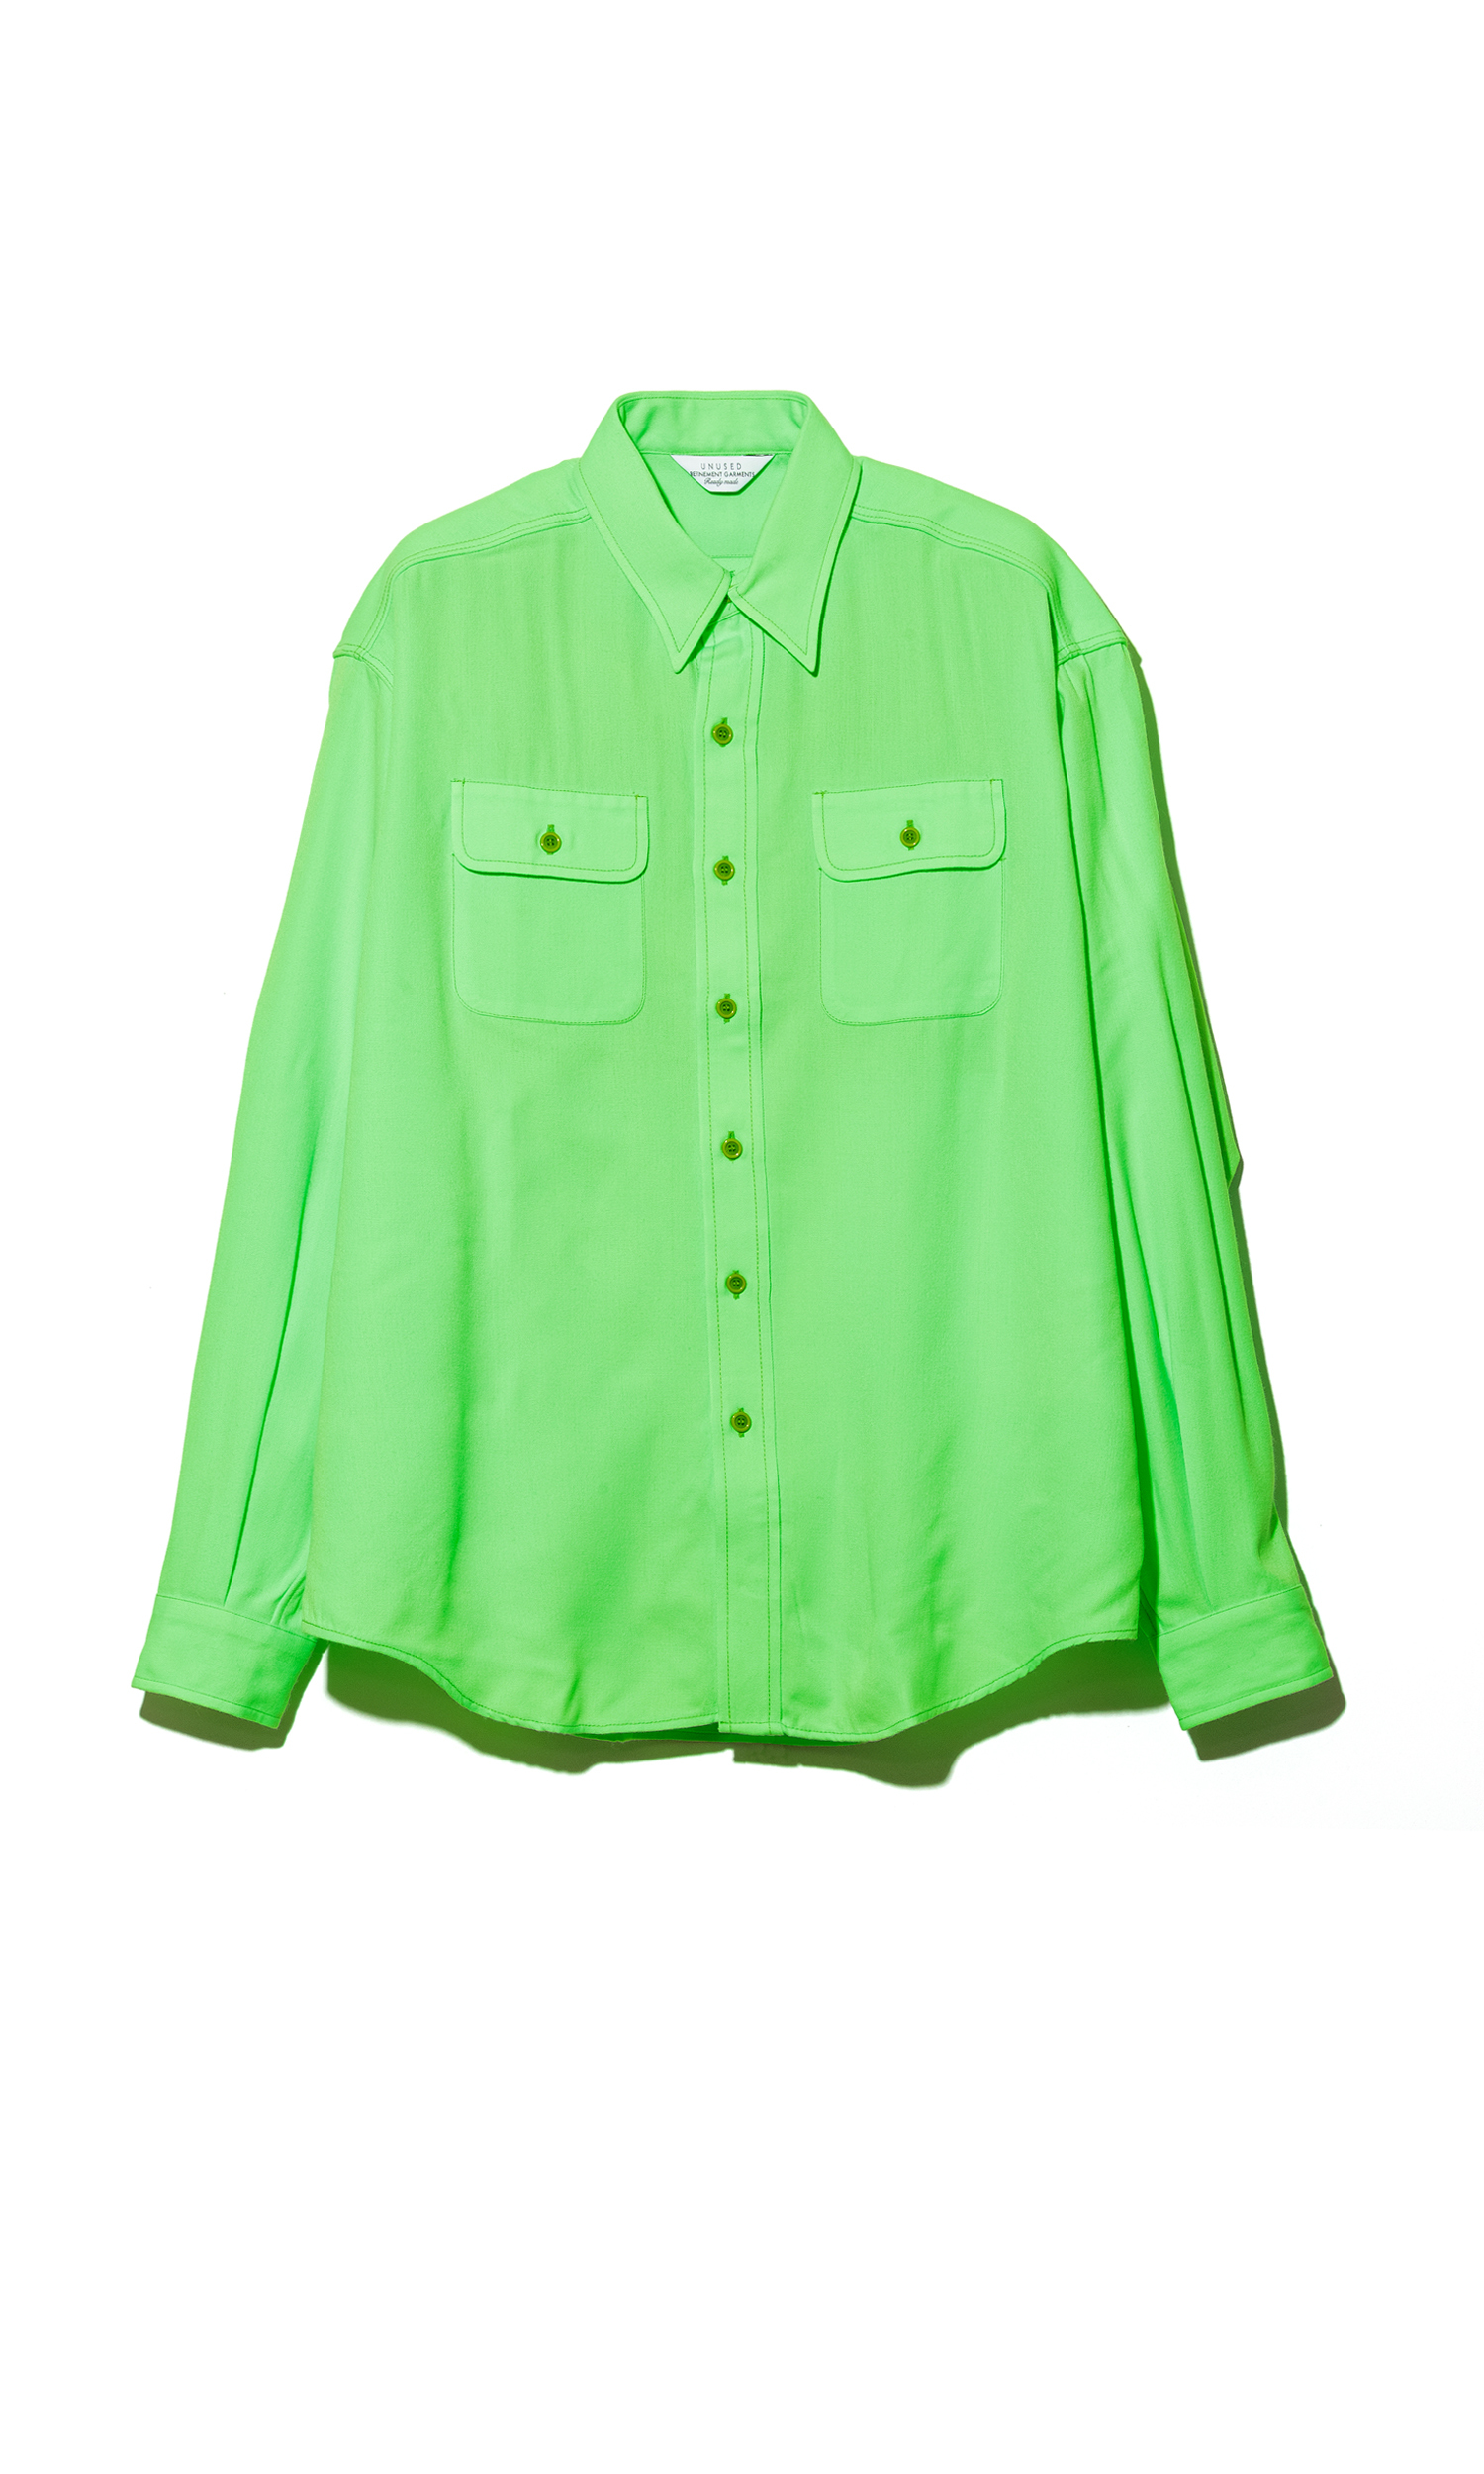 US1913 / LIME GREEN